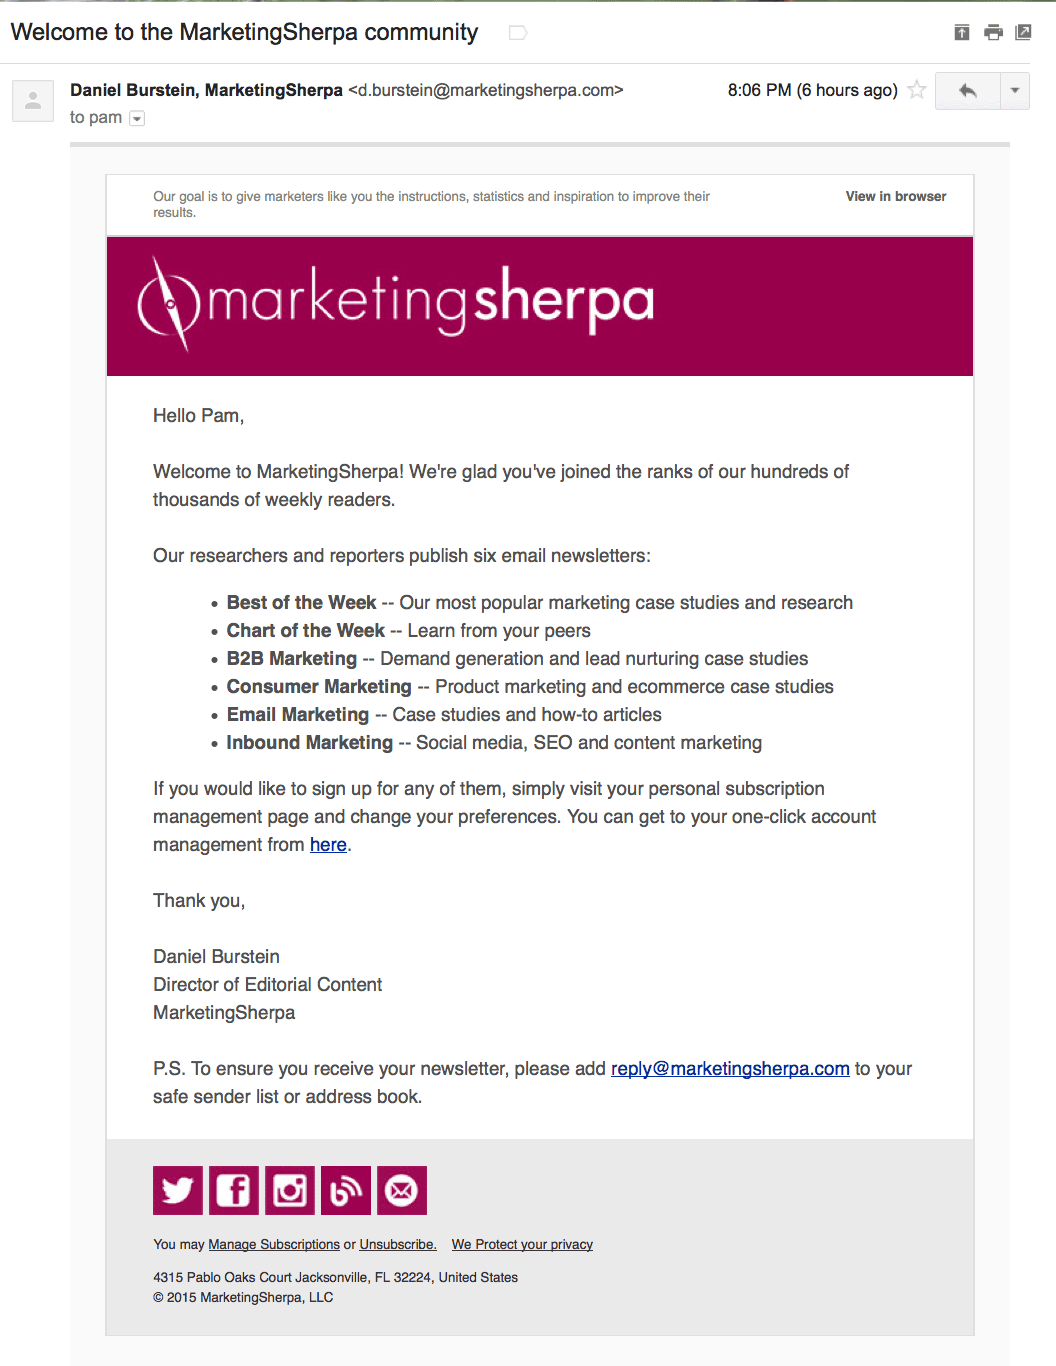 SherpaWelcome-b2b welcome emails